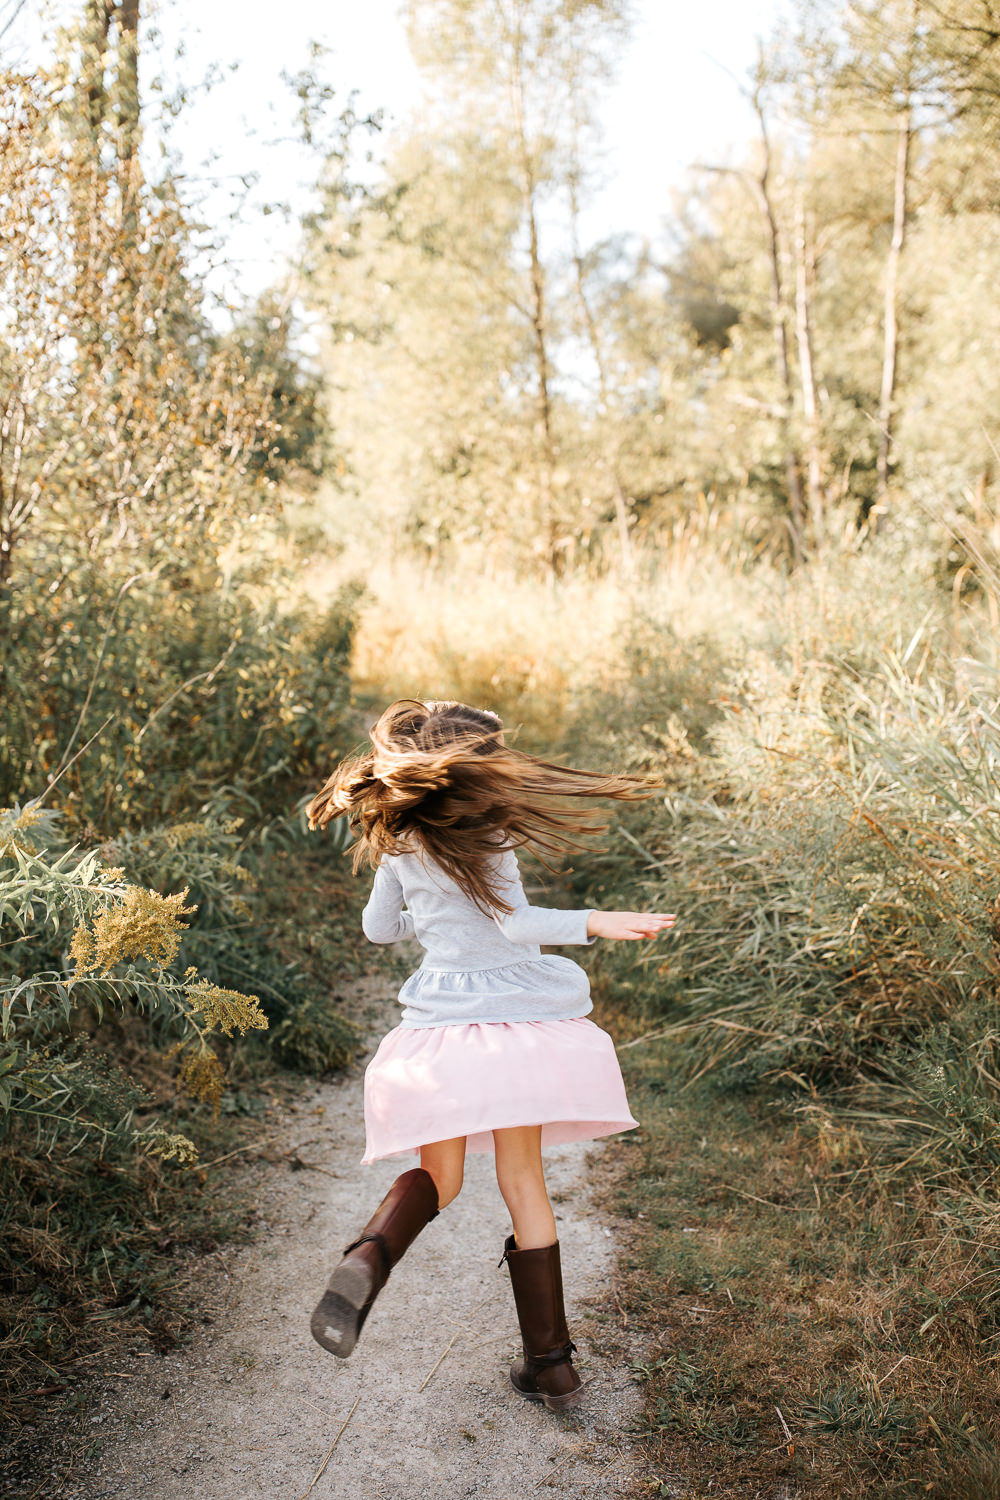 5 year old girl with long dark hair wearing tall boots and pink skirt twirling on path surrounded by tall grasses, hair and skirt moving - York Region In-Home Photos